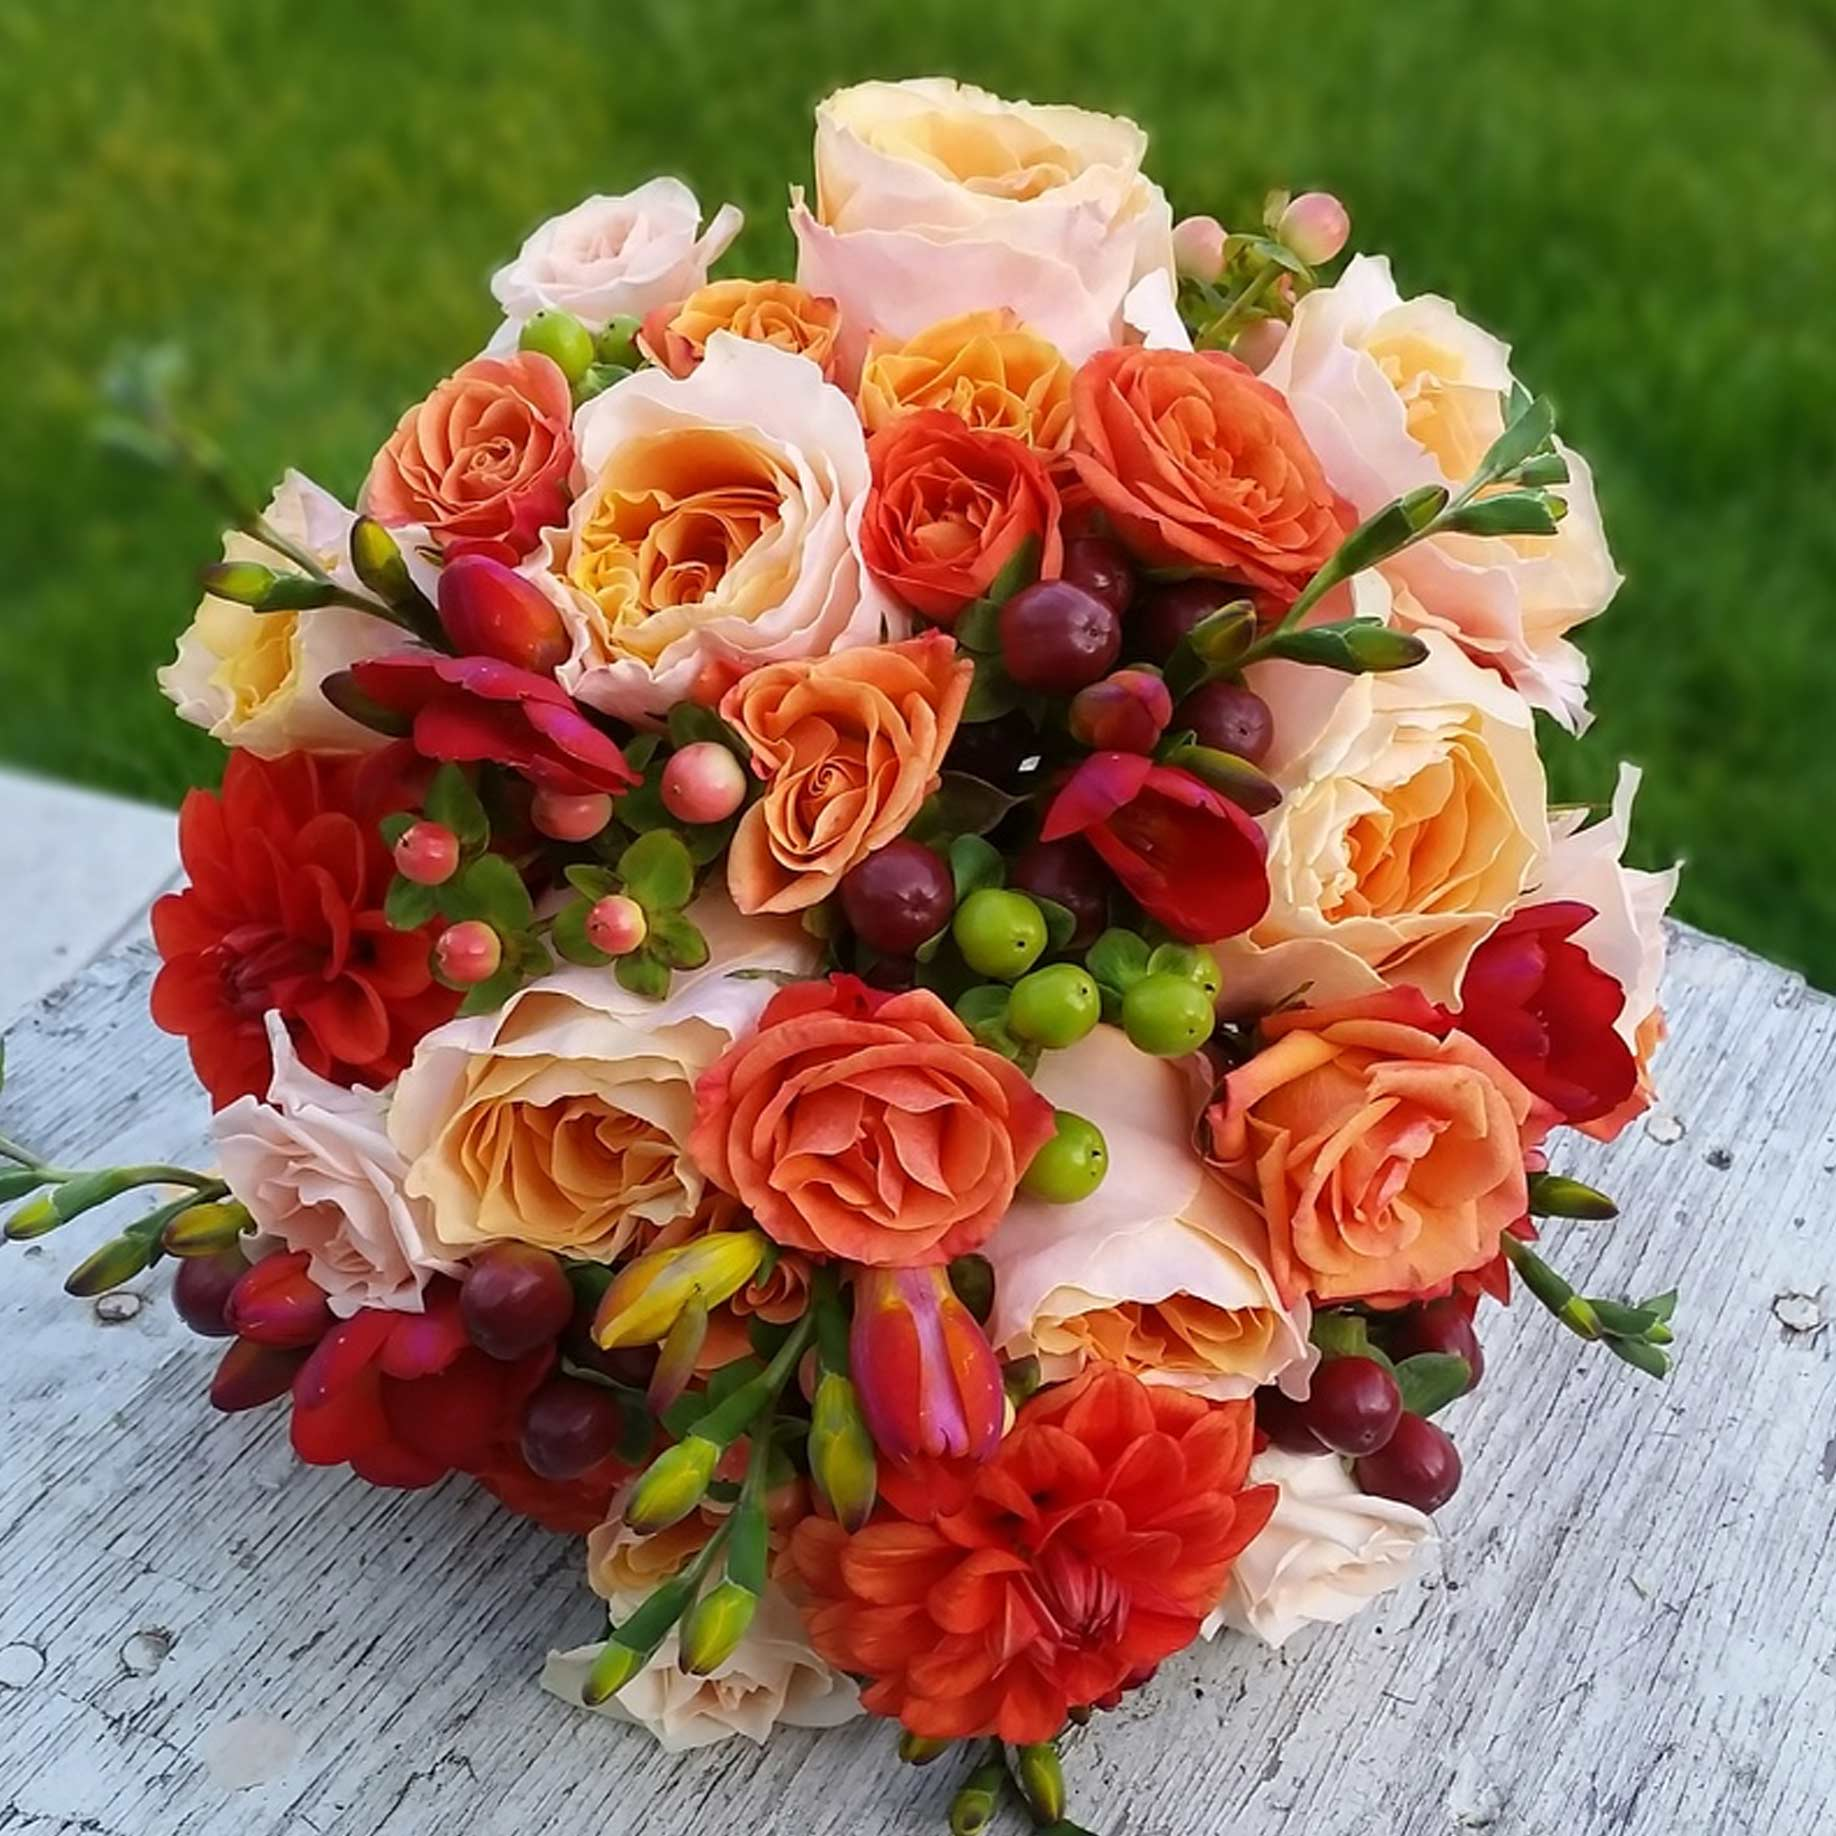 Autumn Weddings - Bouquets, corsages, and more